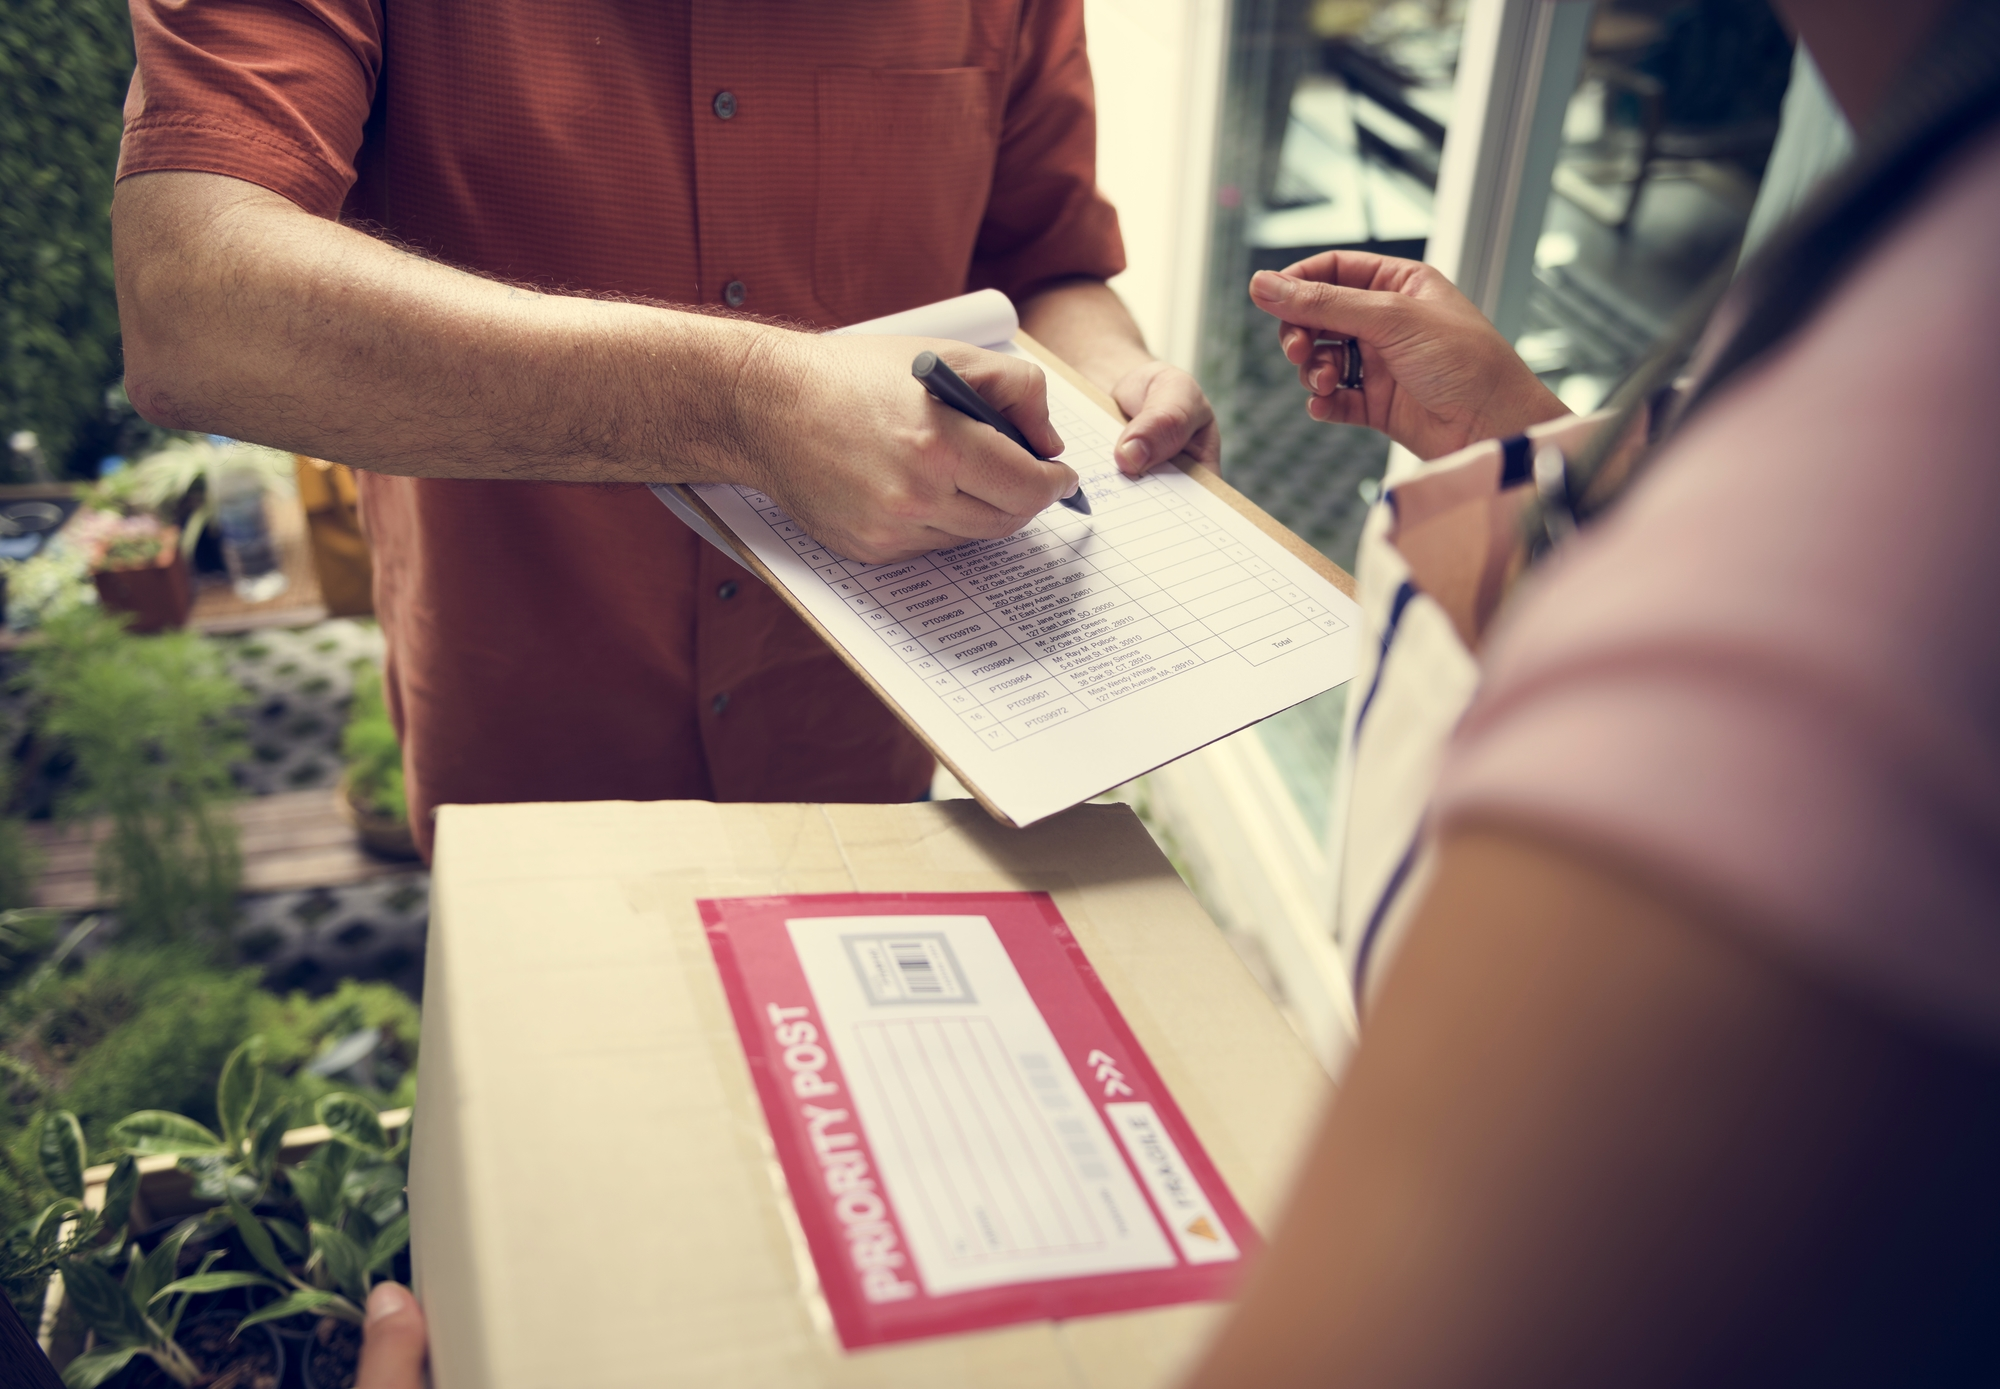 Why Courier Services Are Ideal for Local Deliveries - Kidd Curry